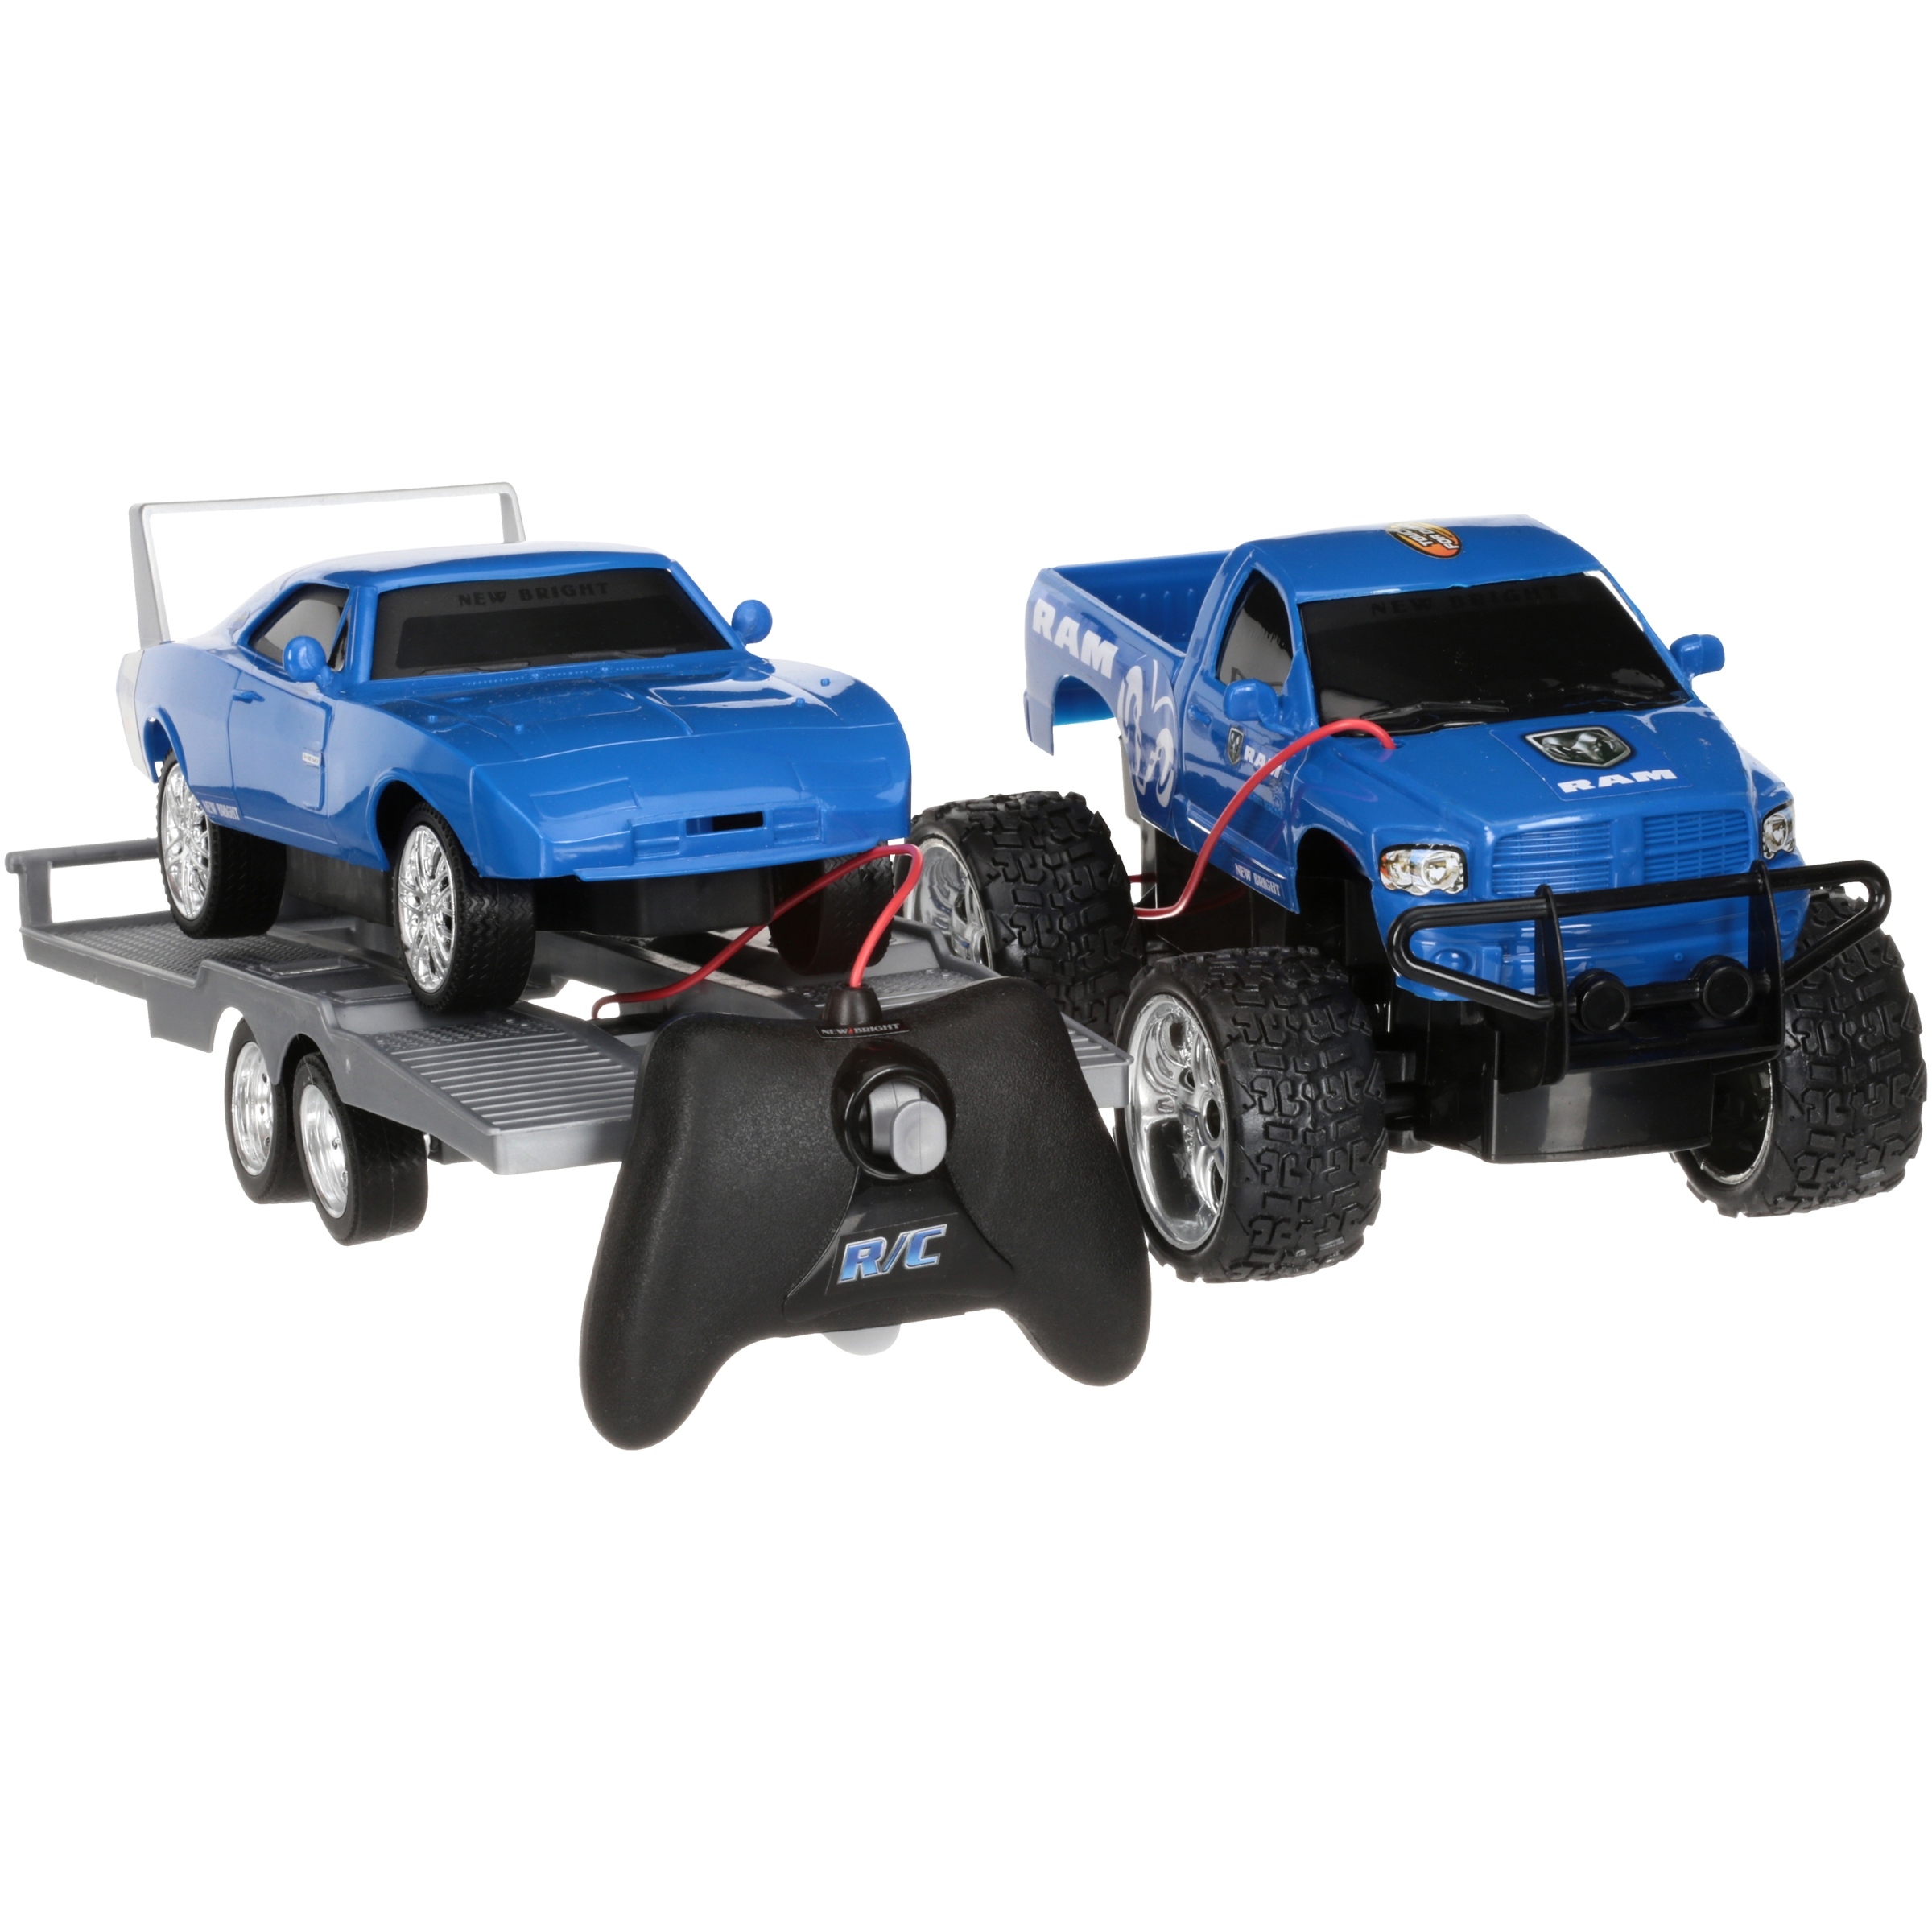 Adventure Force Ram '69 Daytona Charger Custom Cruiser Radio Control Truck Set 4 pc Box by New Bright Industrial Co., Ltd.